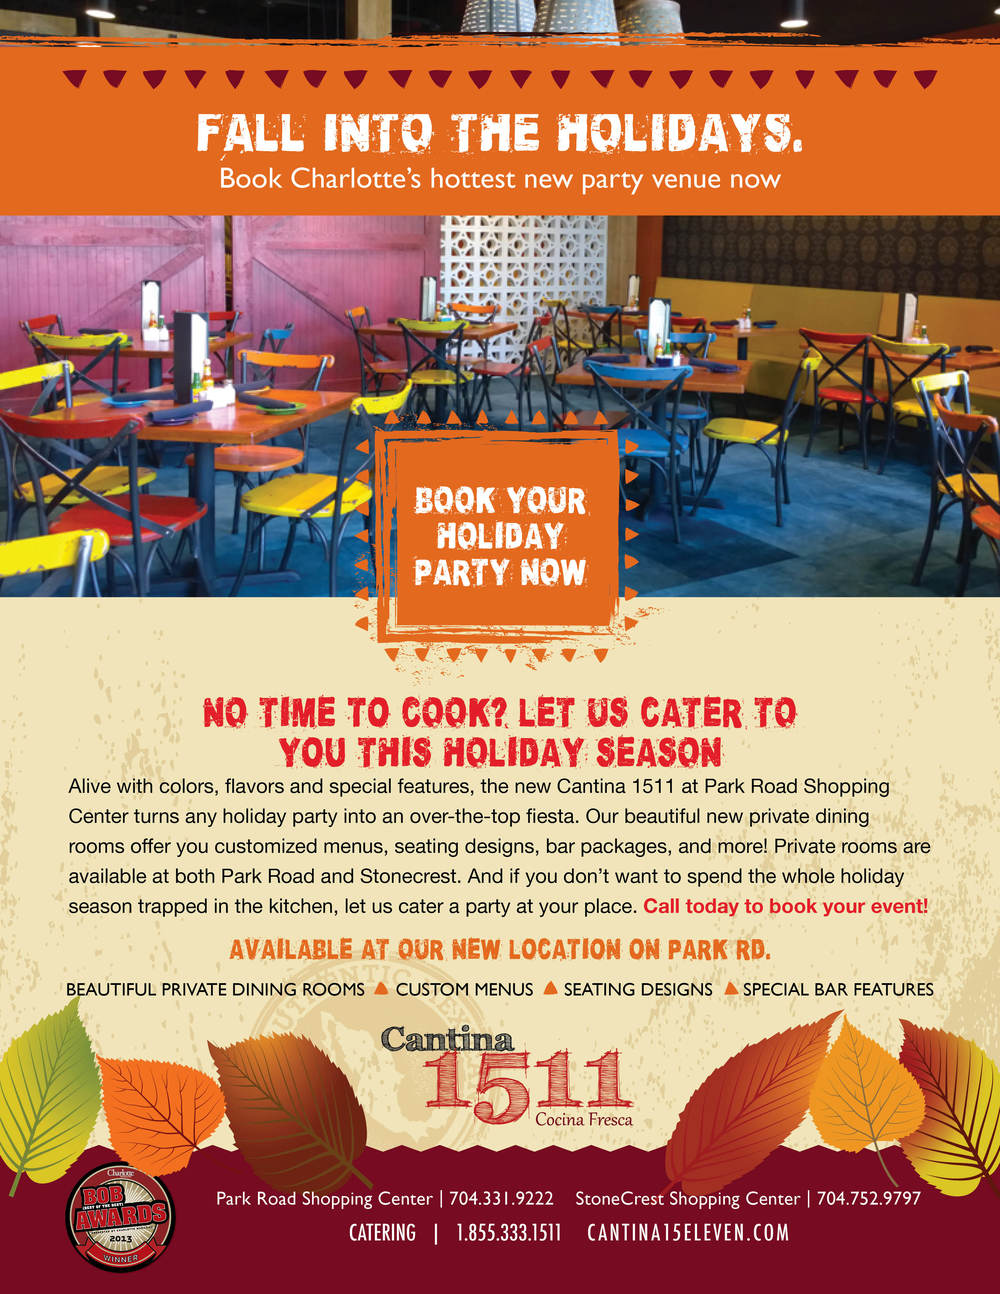 Cantina 1511 - Fall Into THe Holidays